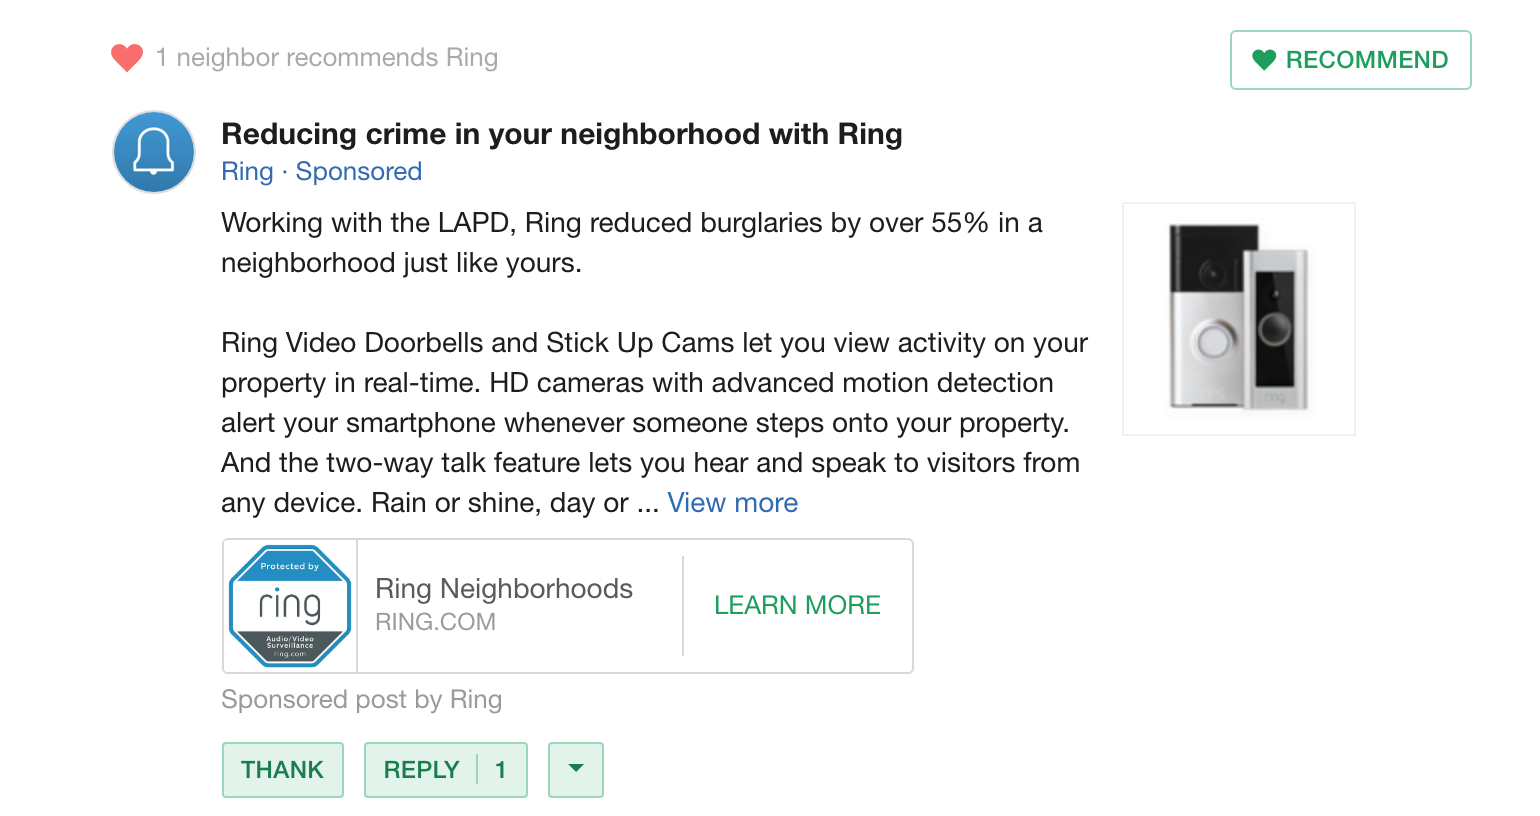 paid ad on Nextdoor neighborhood social network for Ring doorbell video camera